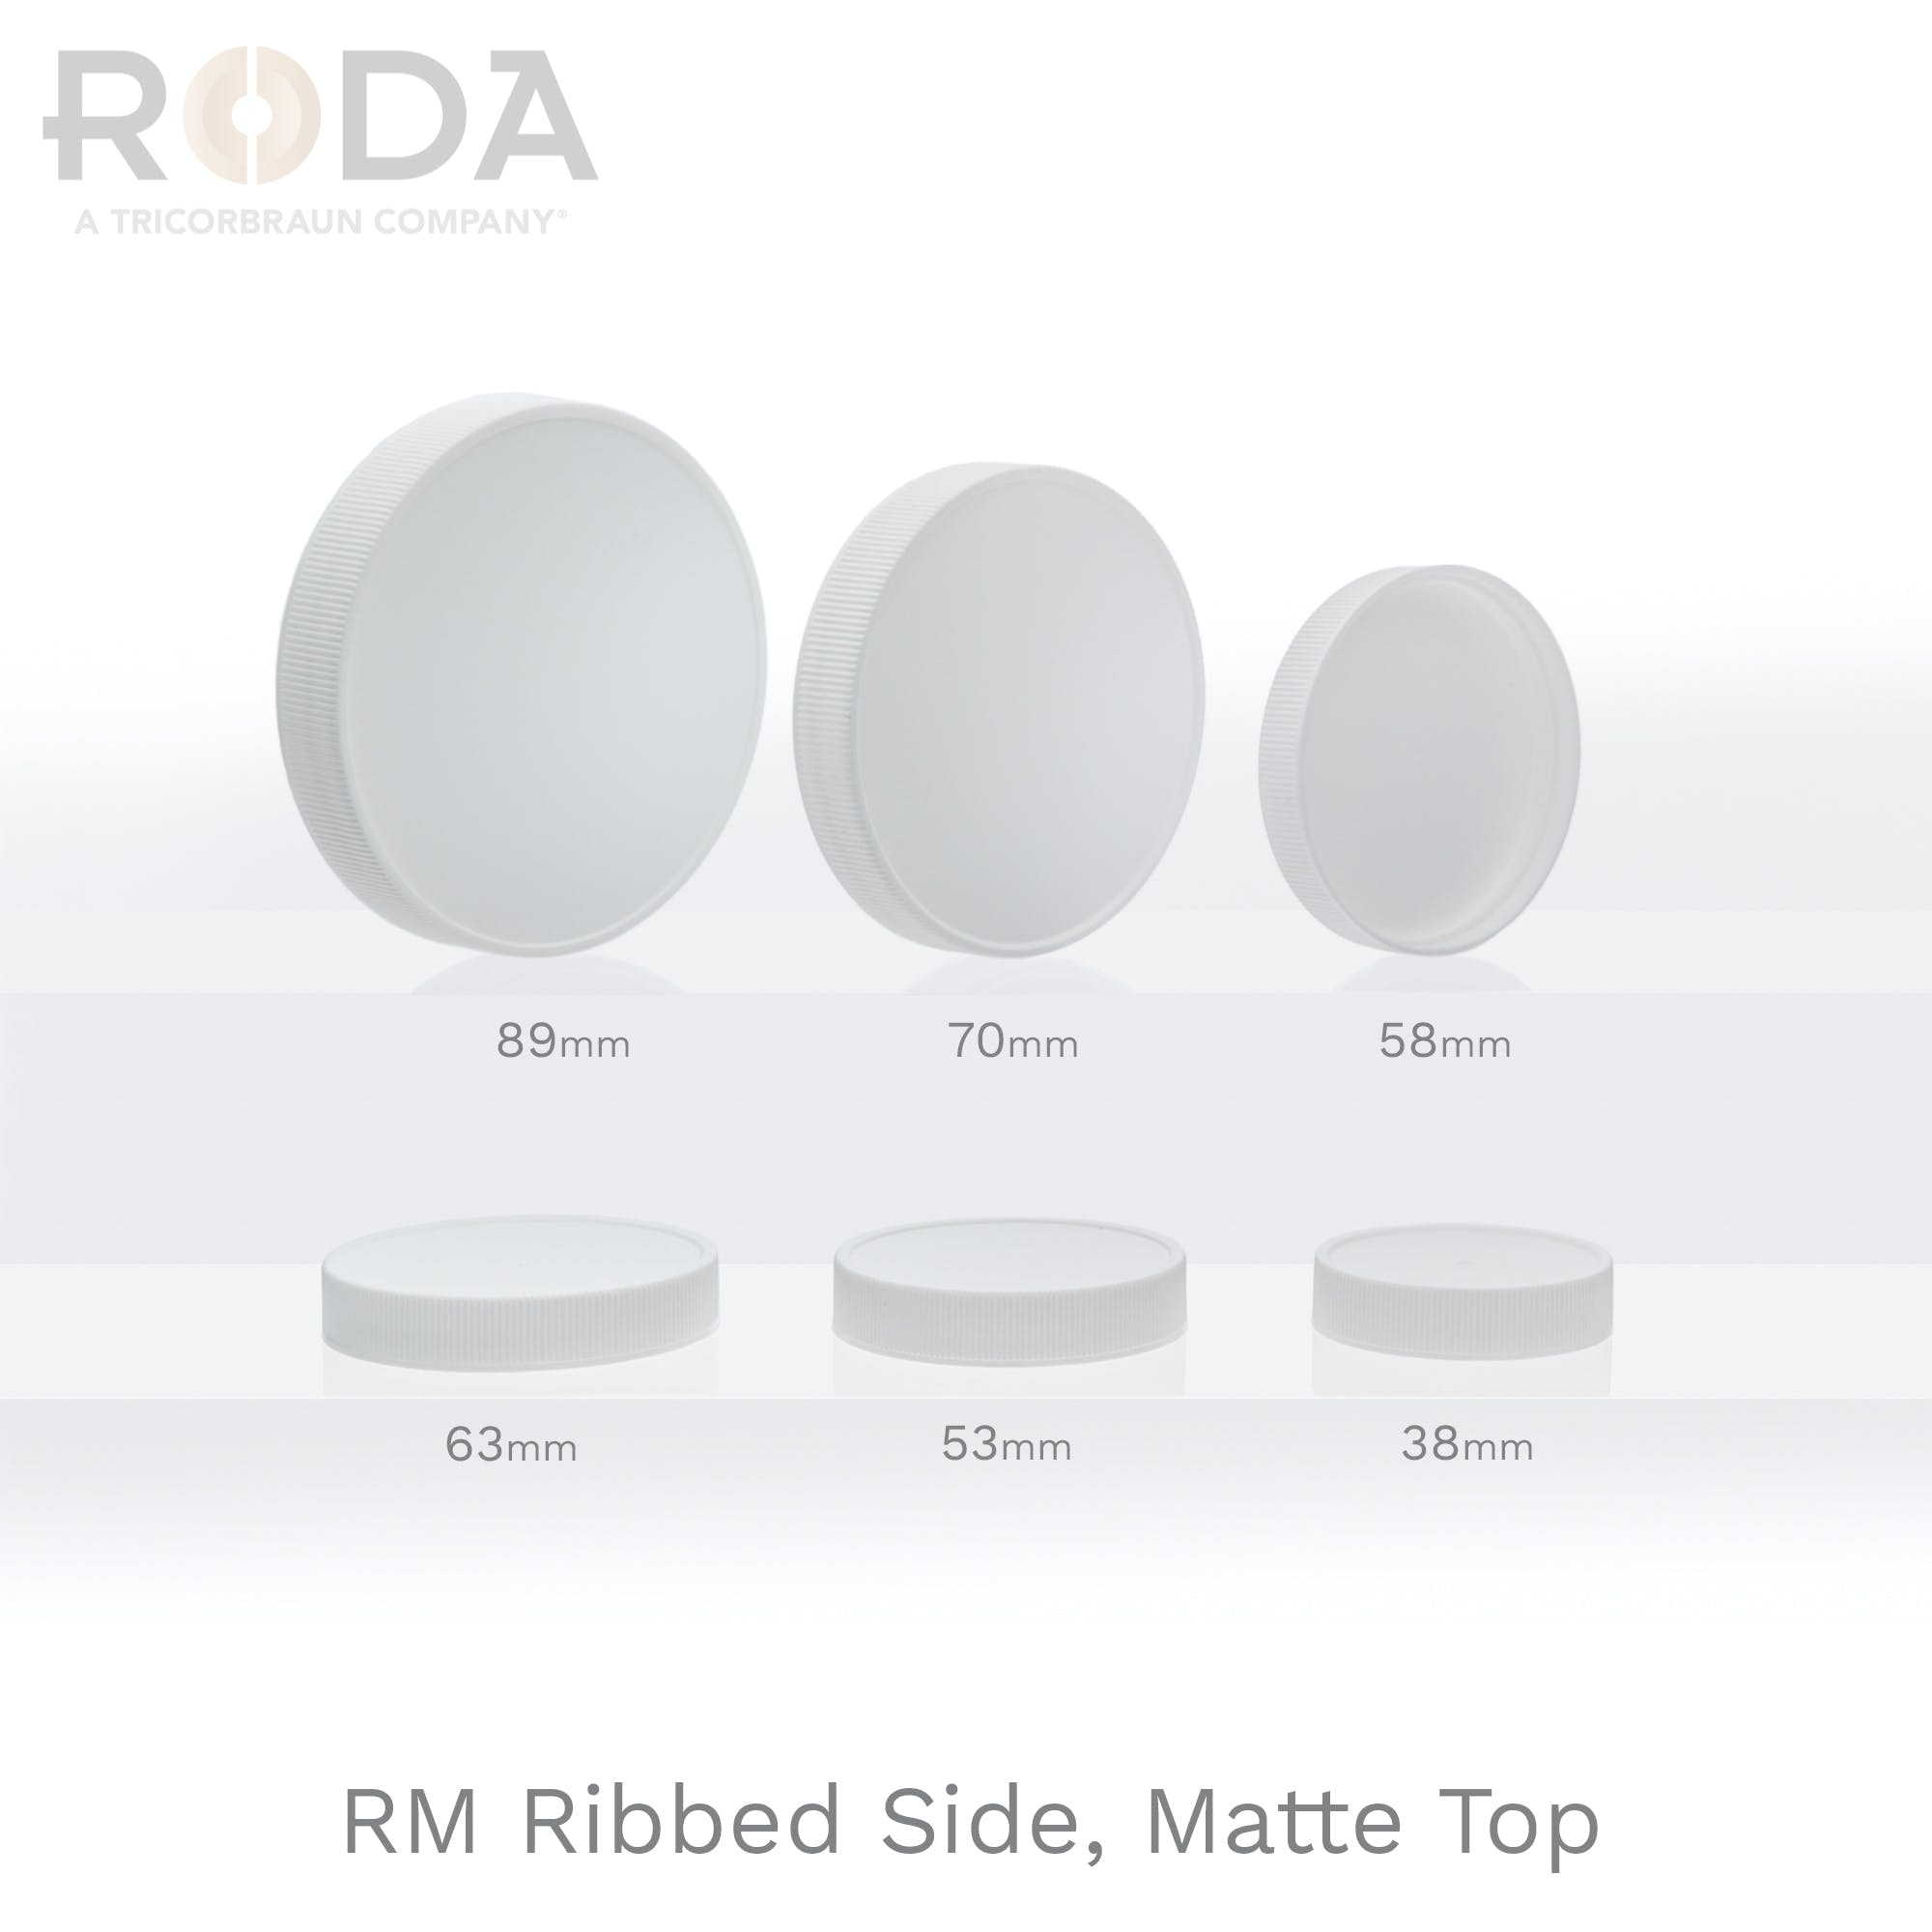 RM Ribbed Side, Matte Top